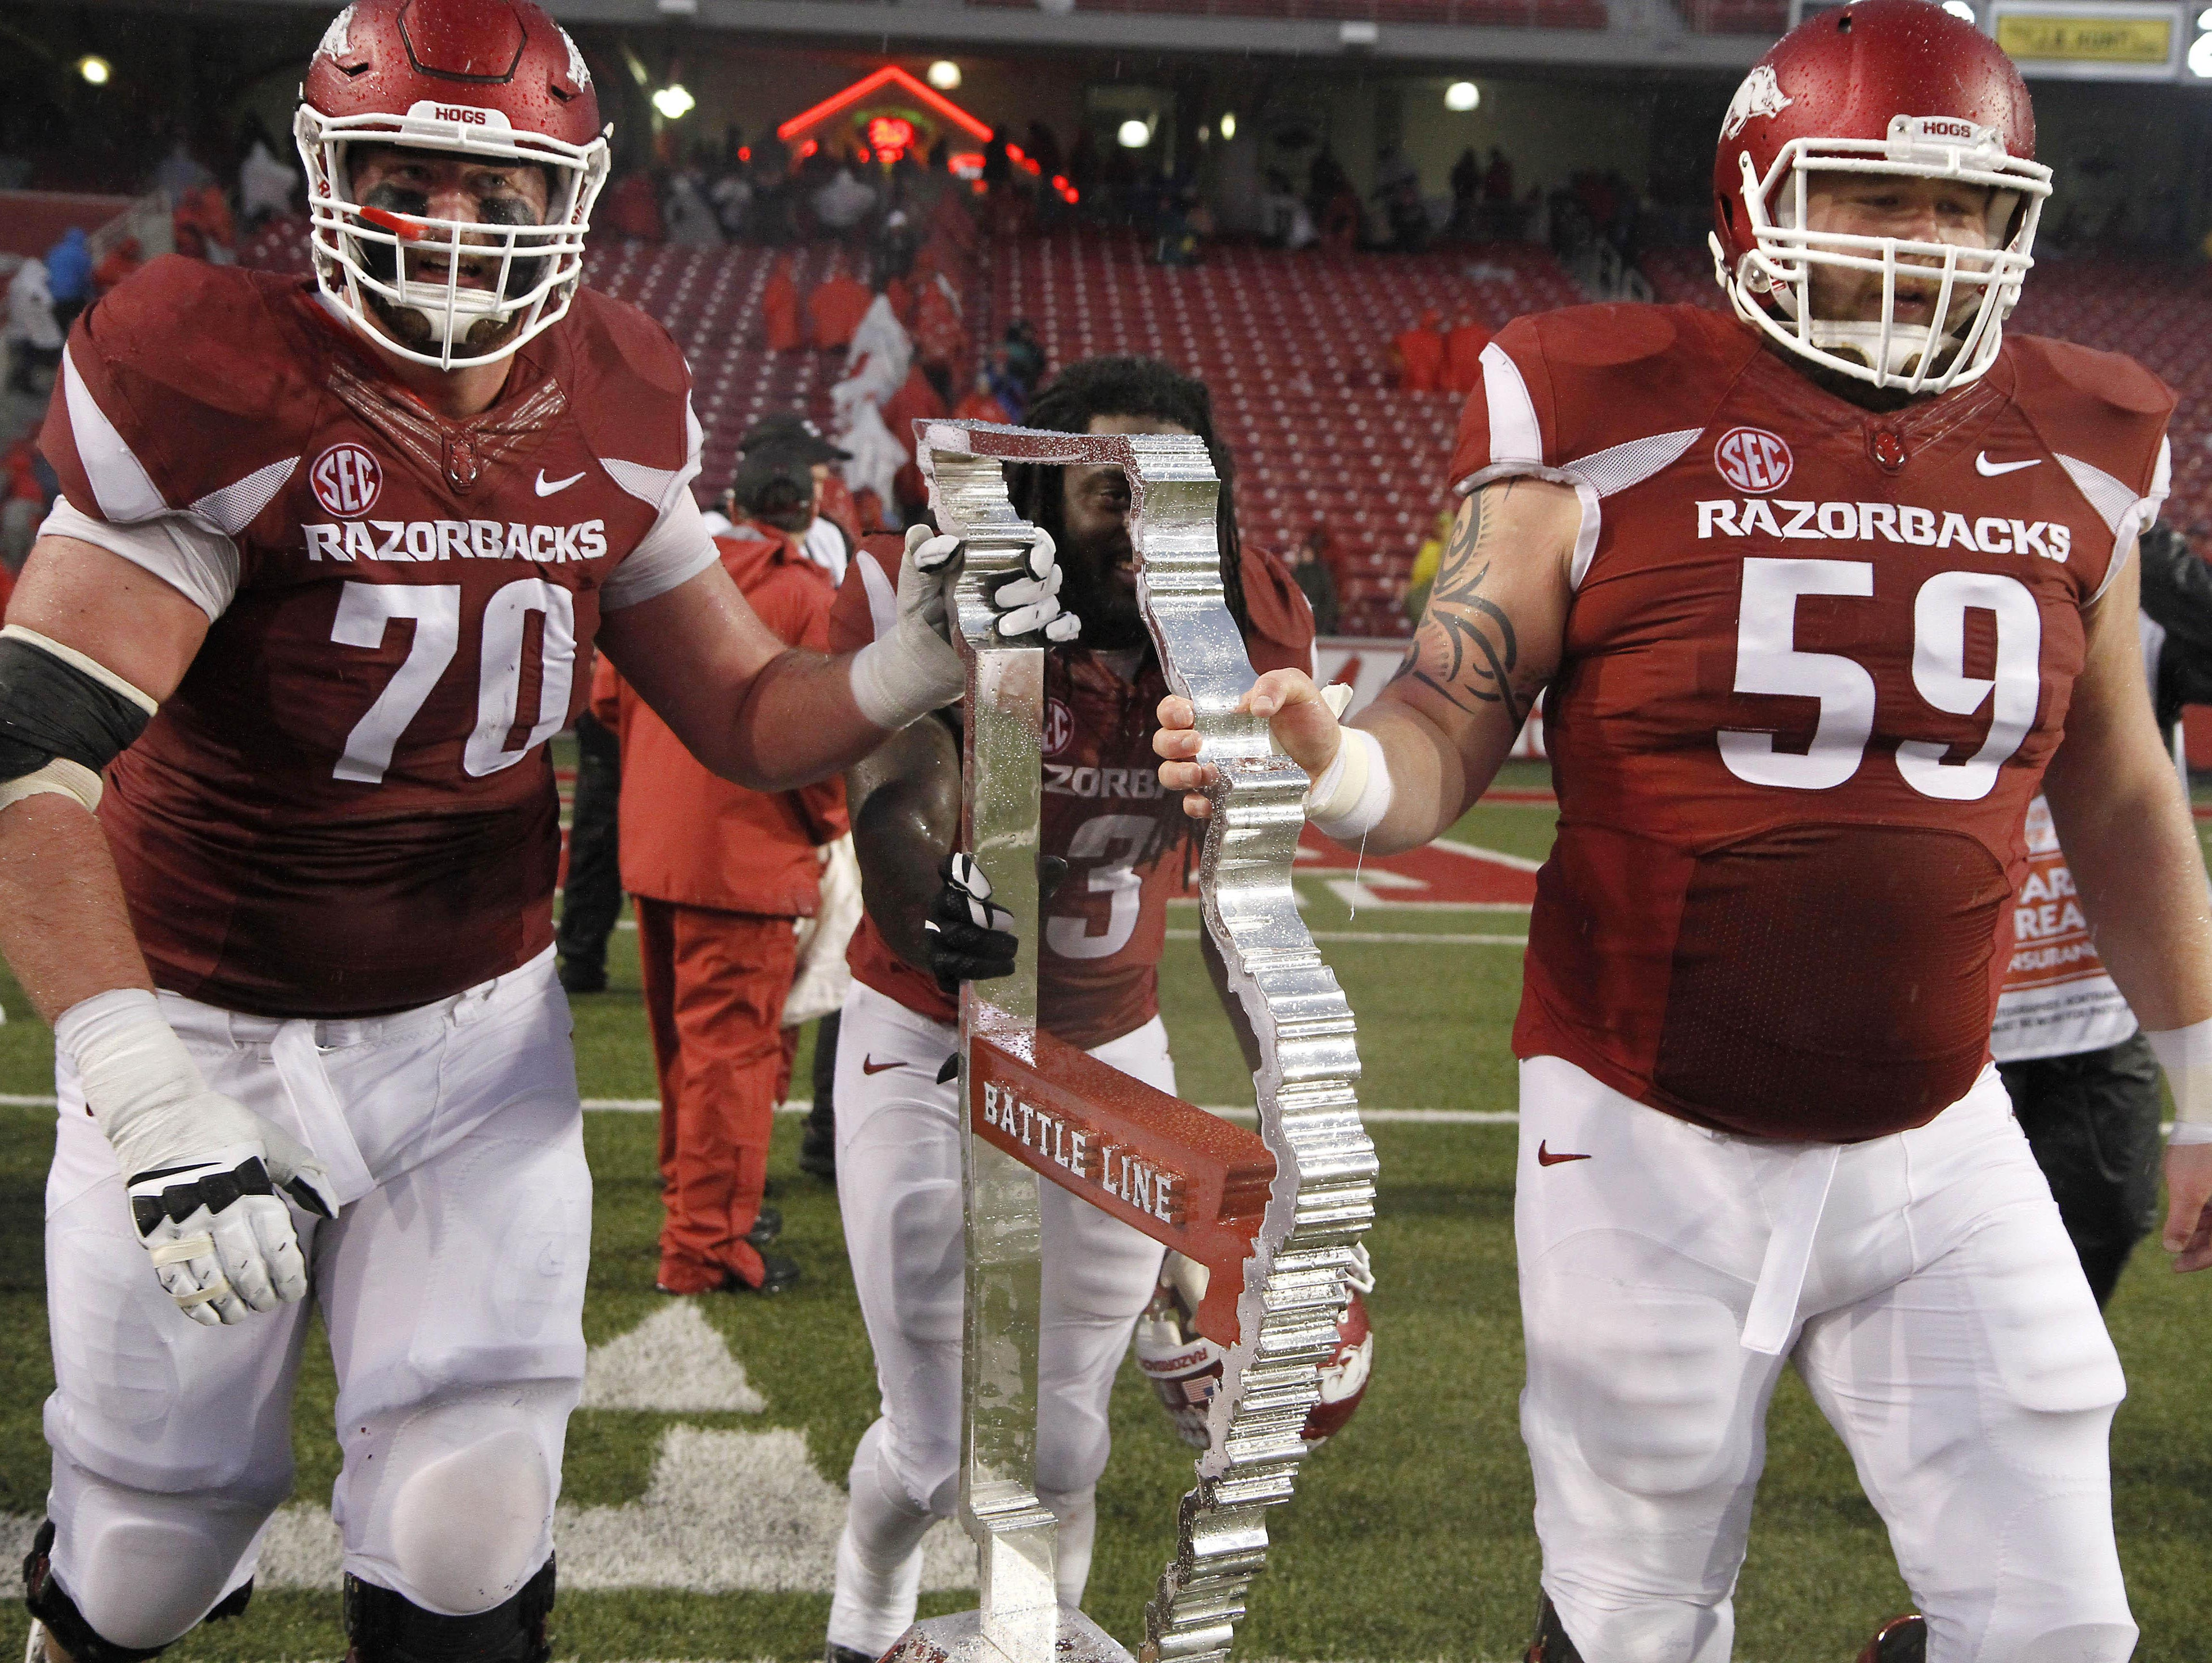 Arkansas' Dan Skipper (70), Alex Collins (3) and Marcus Danenhauer (59) push the Battle Line trophy off the field after a recent game against Missouri in Fayetteville.